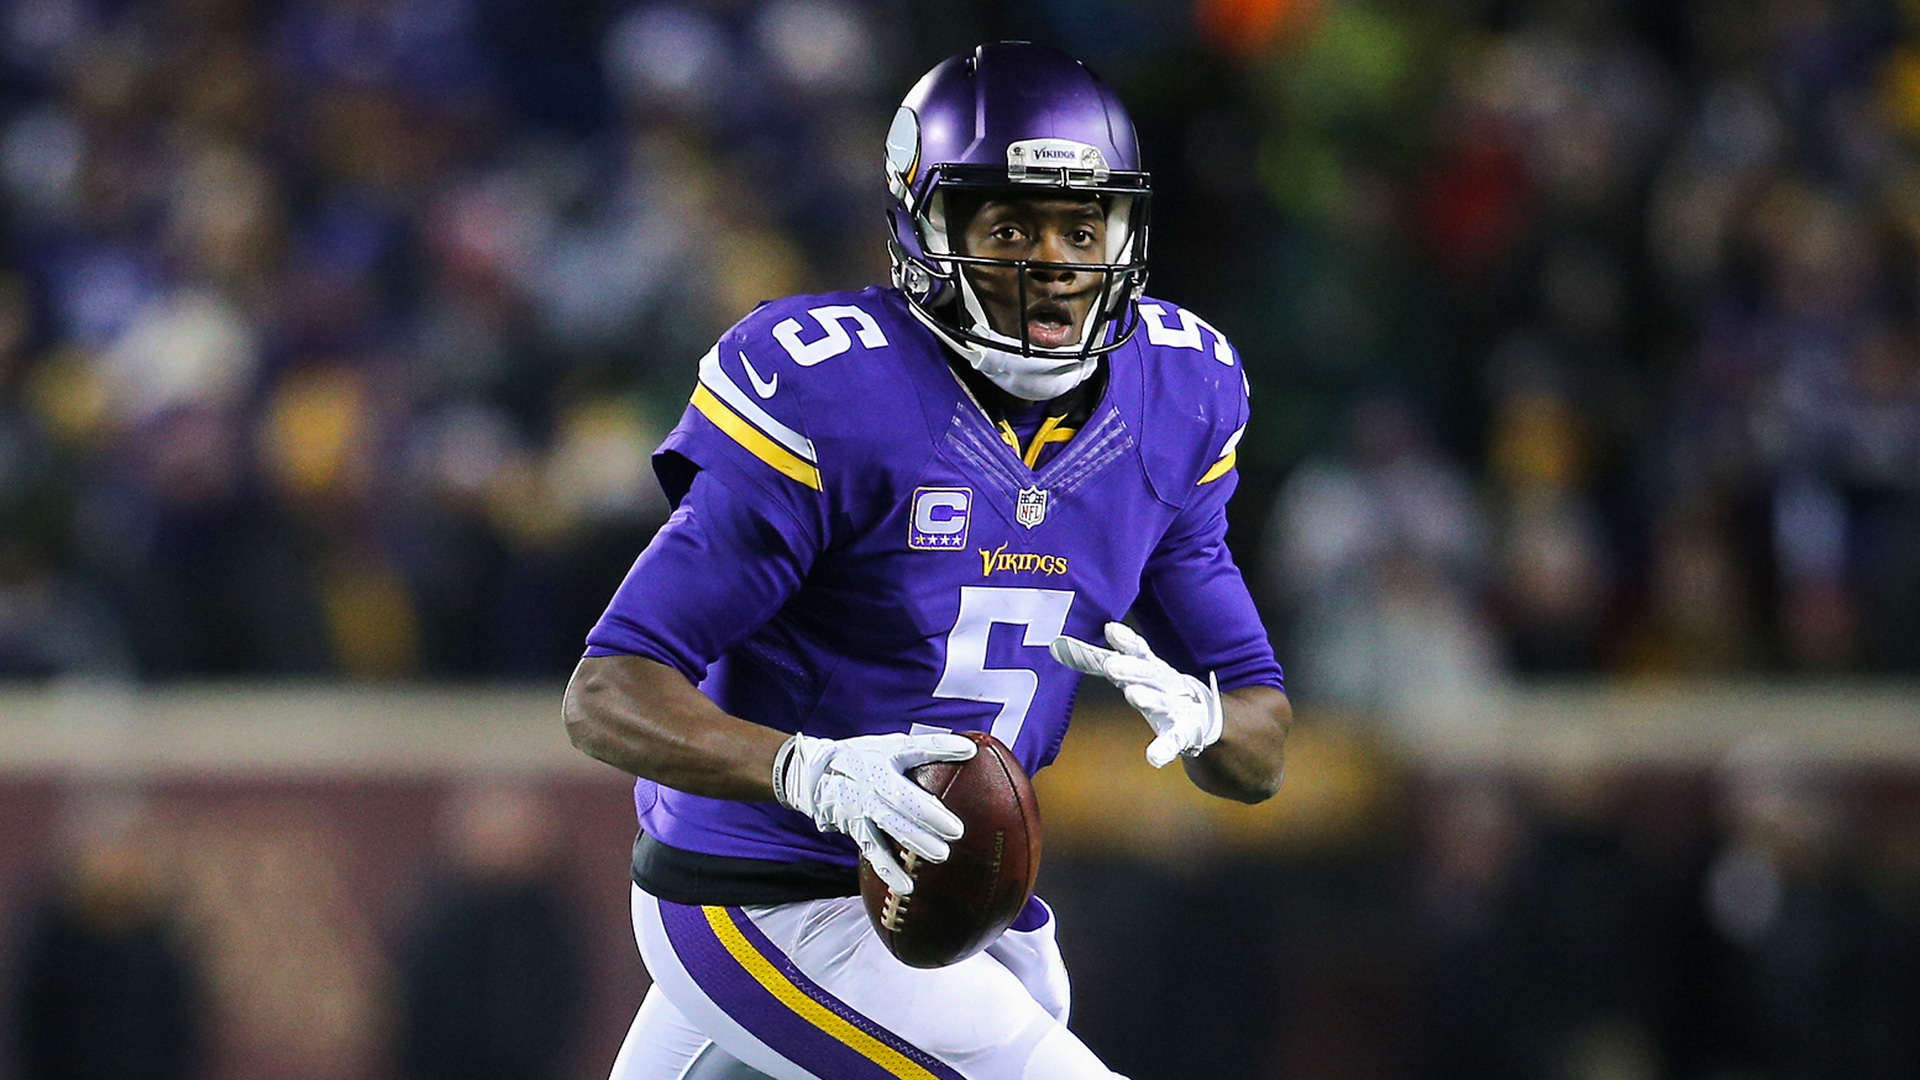 teddy bridgewater might be smarter risk than qb from shaky